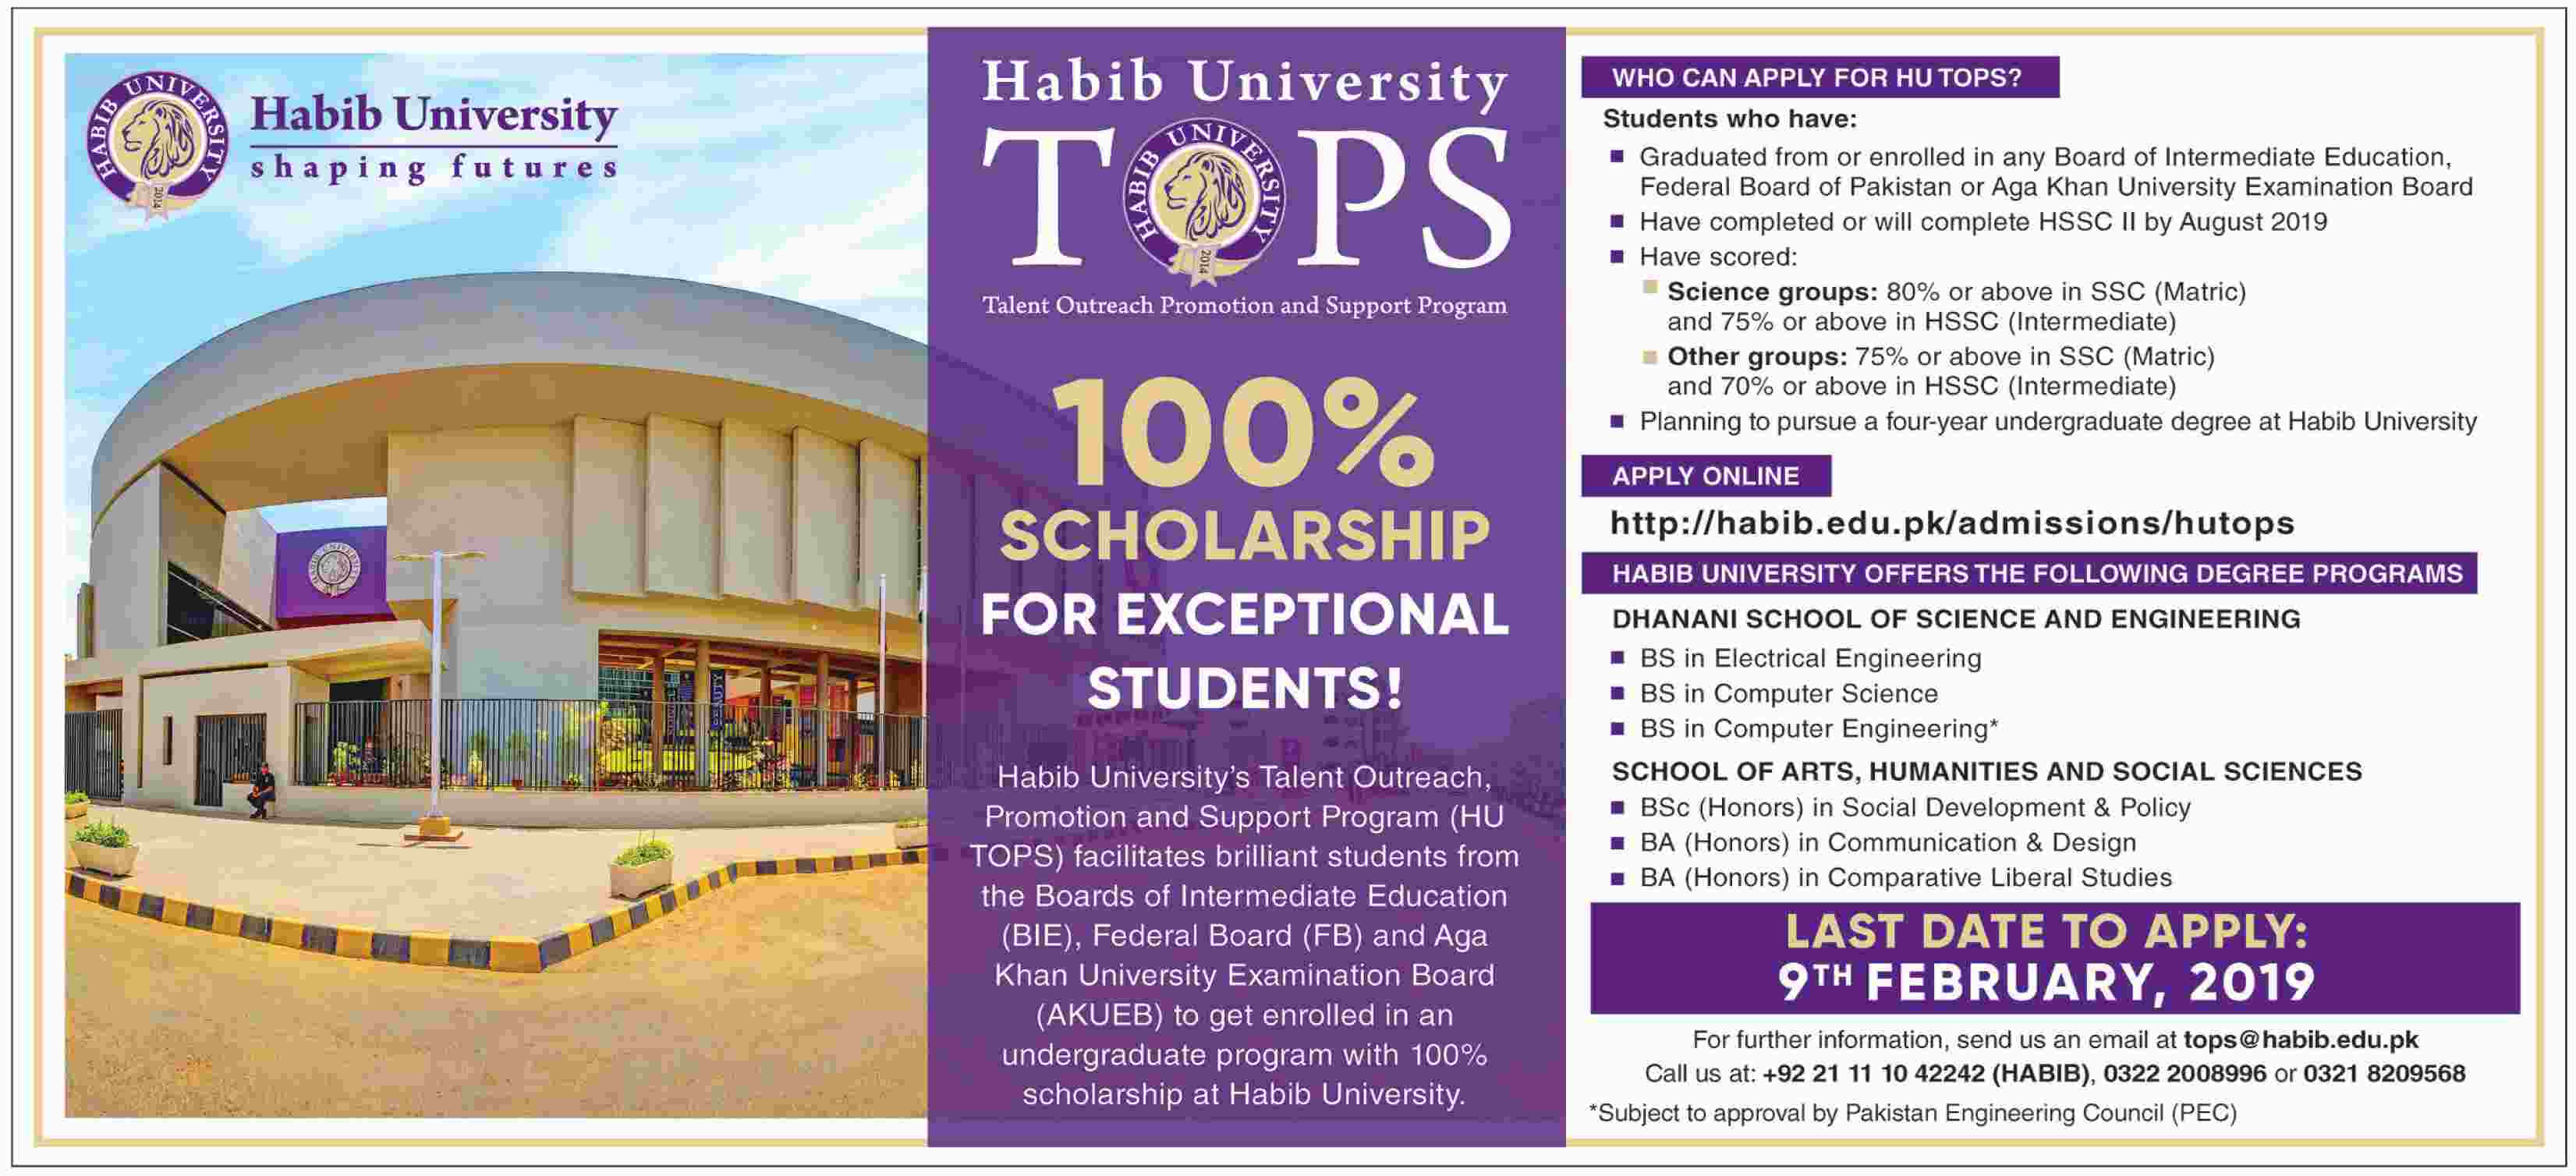 100% Scholarship for Exceptional Students - Habib University's Talent Outreach, Promotion and Support Program